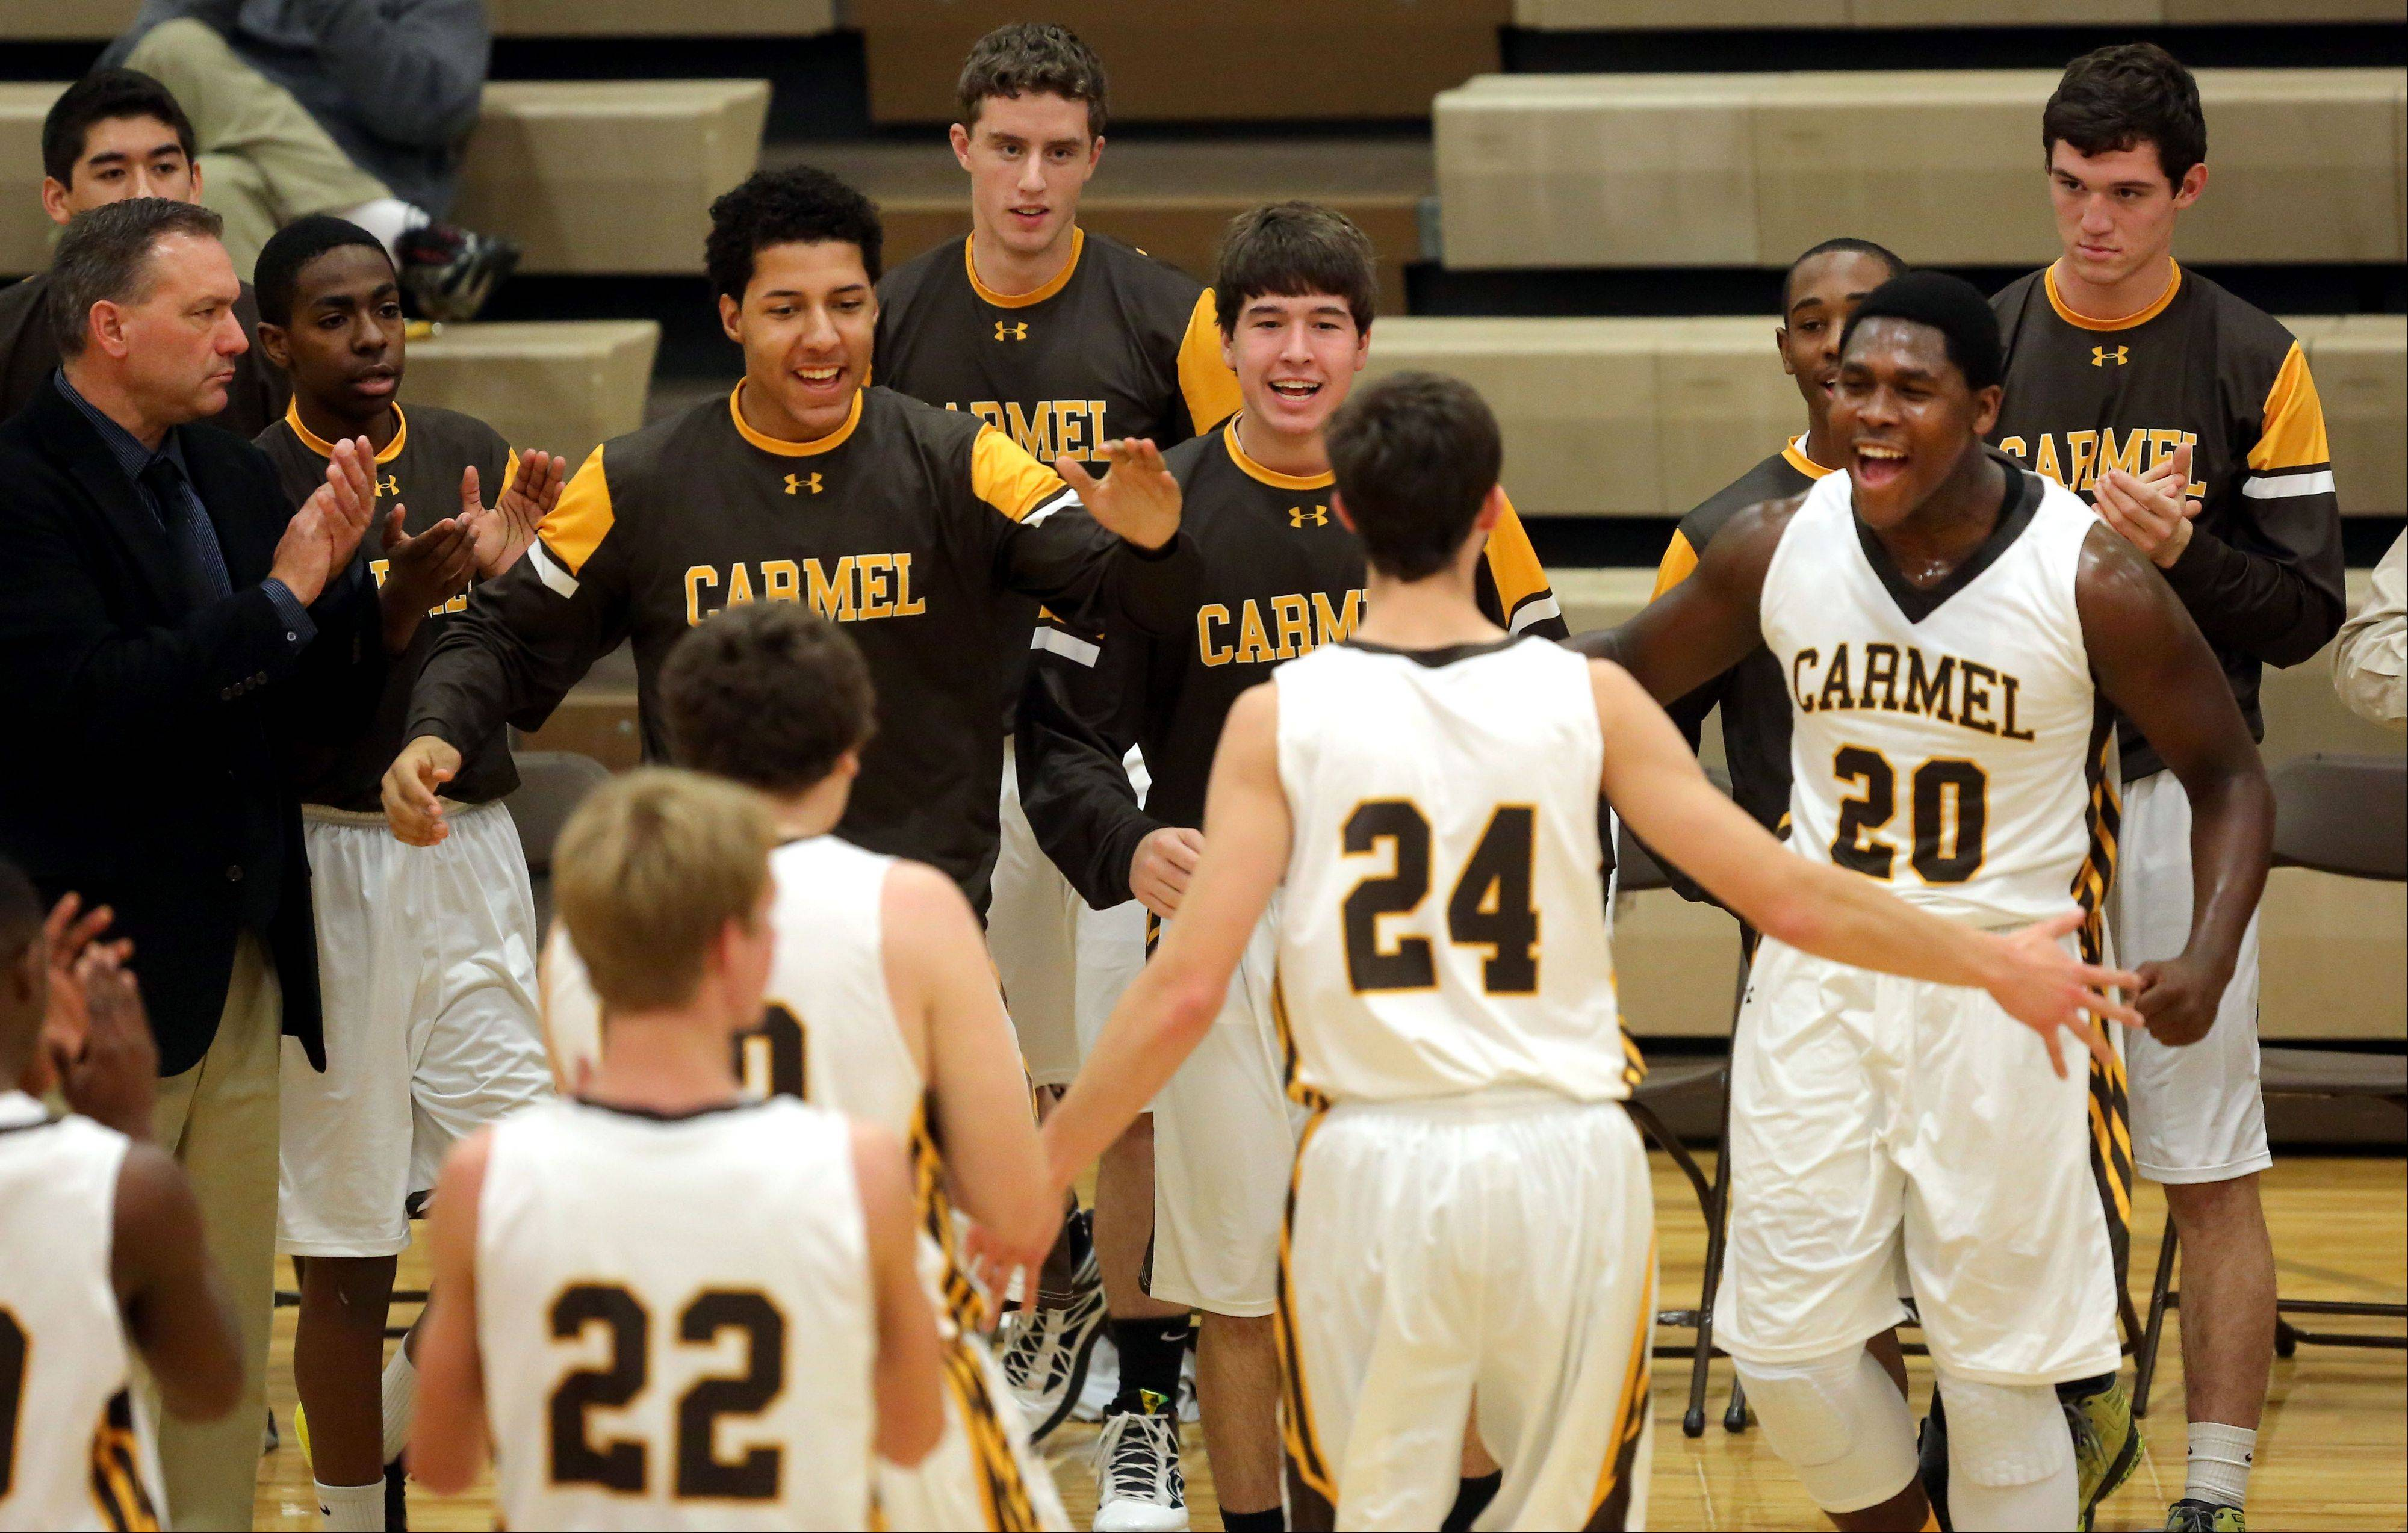 Players on the Carmel bench celebrate.